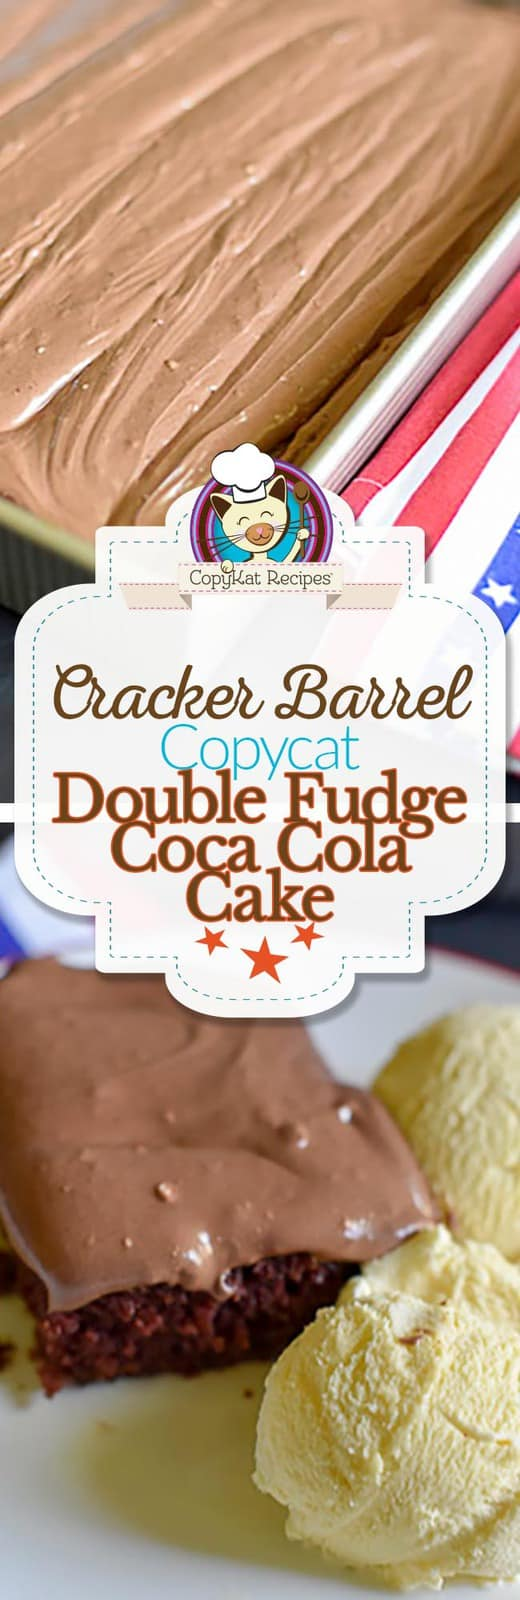 You can recreate the Cracker Barrel Double Fudge Coca Cola Cake at home with this easy copycat recipe.